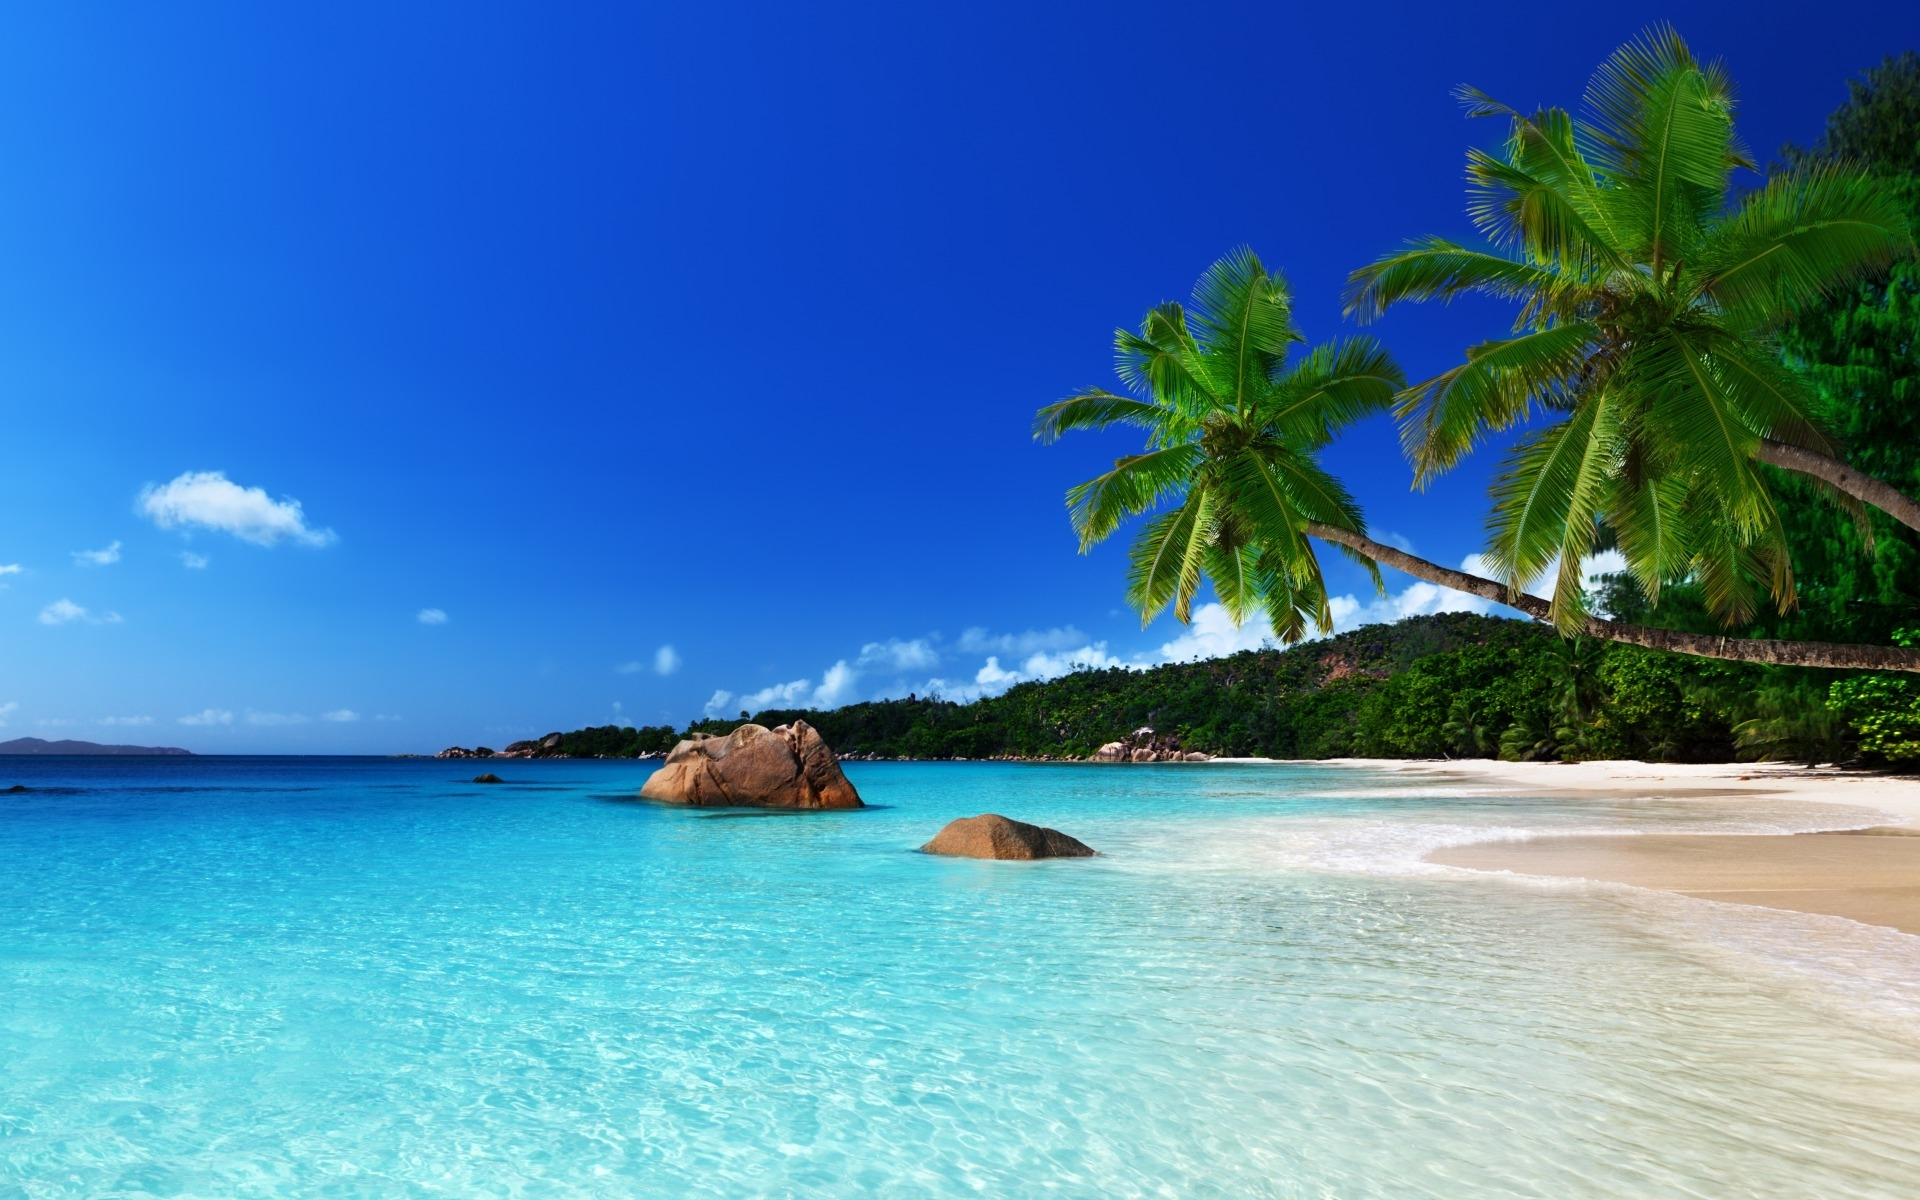 tropical island desktop backgrounds 47 wallpapers